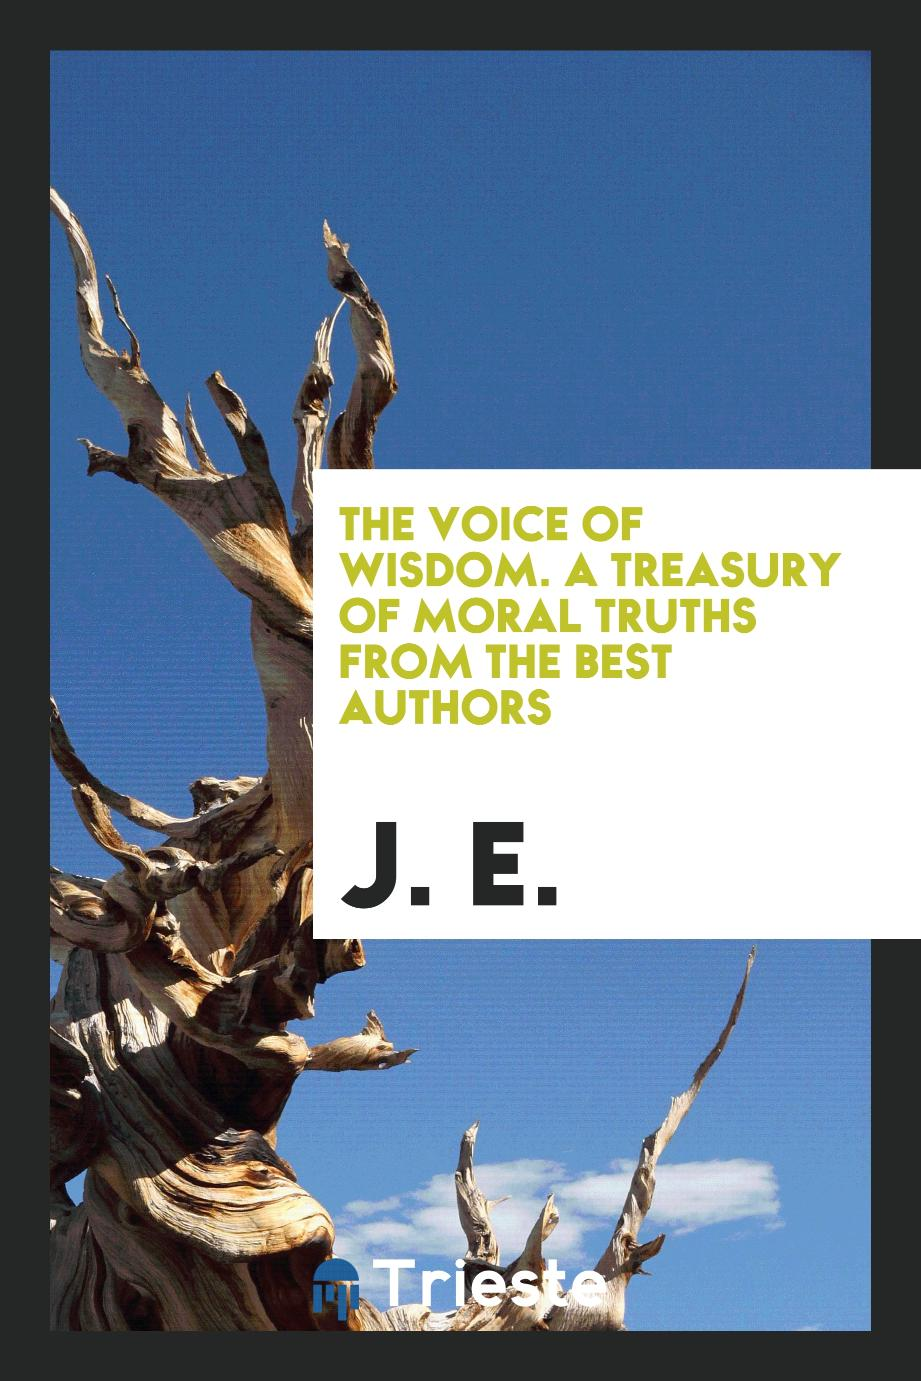 The Voice of Wisdom. A Treasury of Moral Truths from the Best Authors